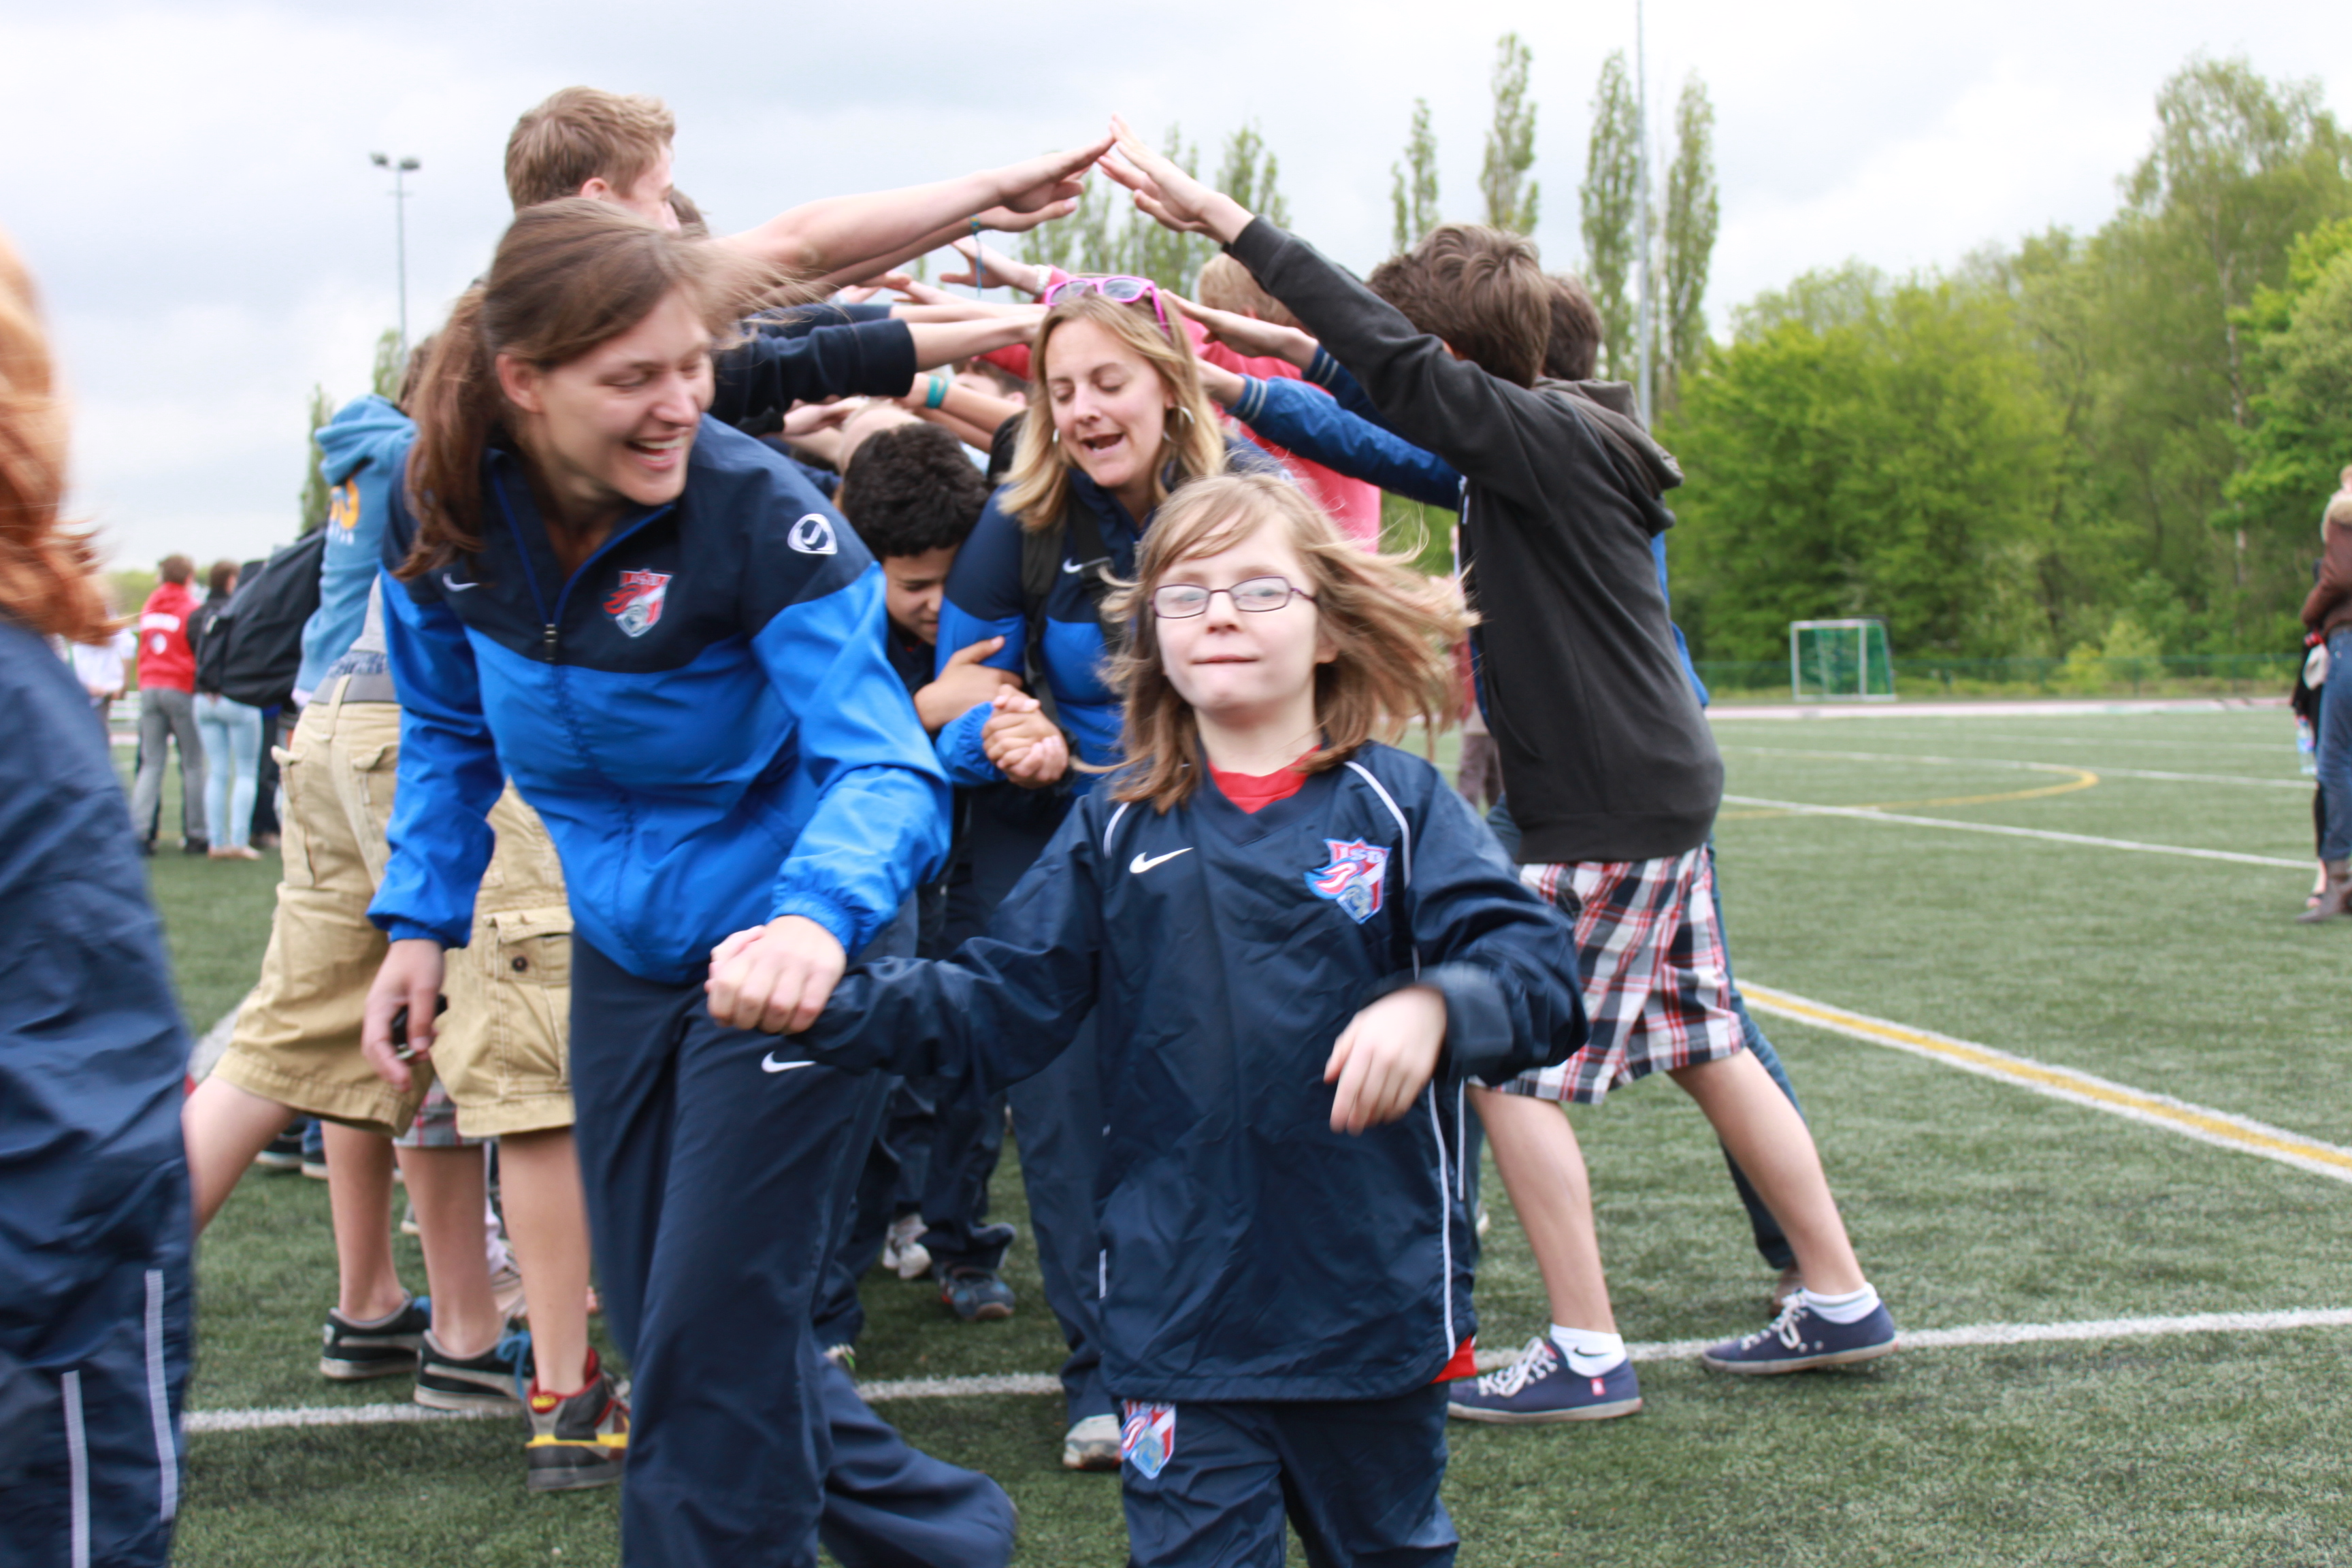 The Special Olympics event at the International School of Brussels